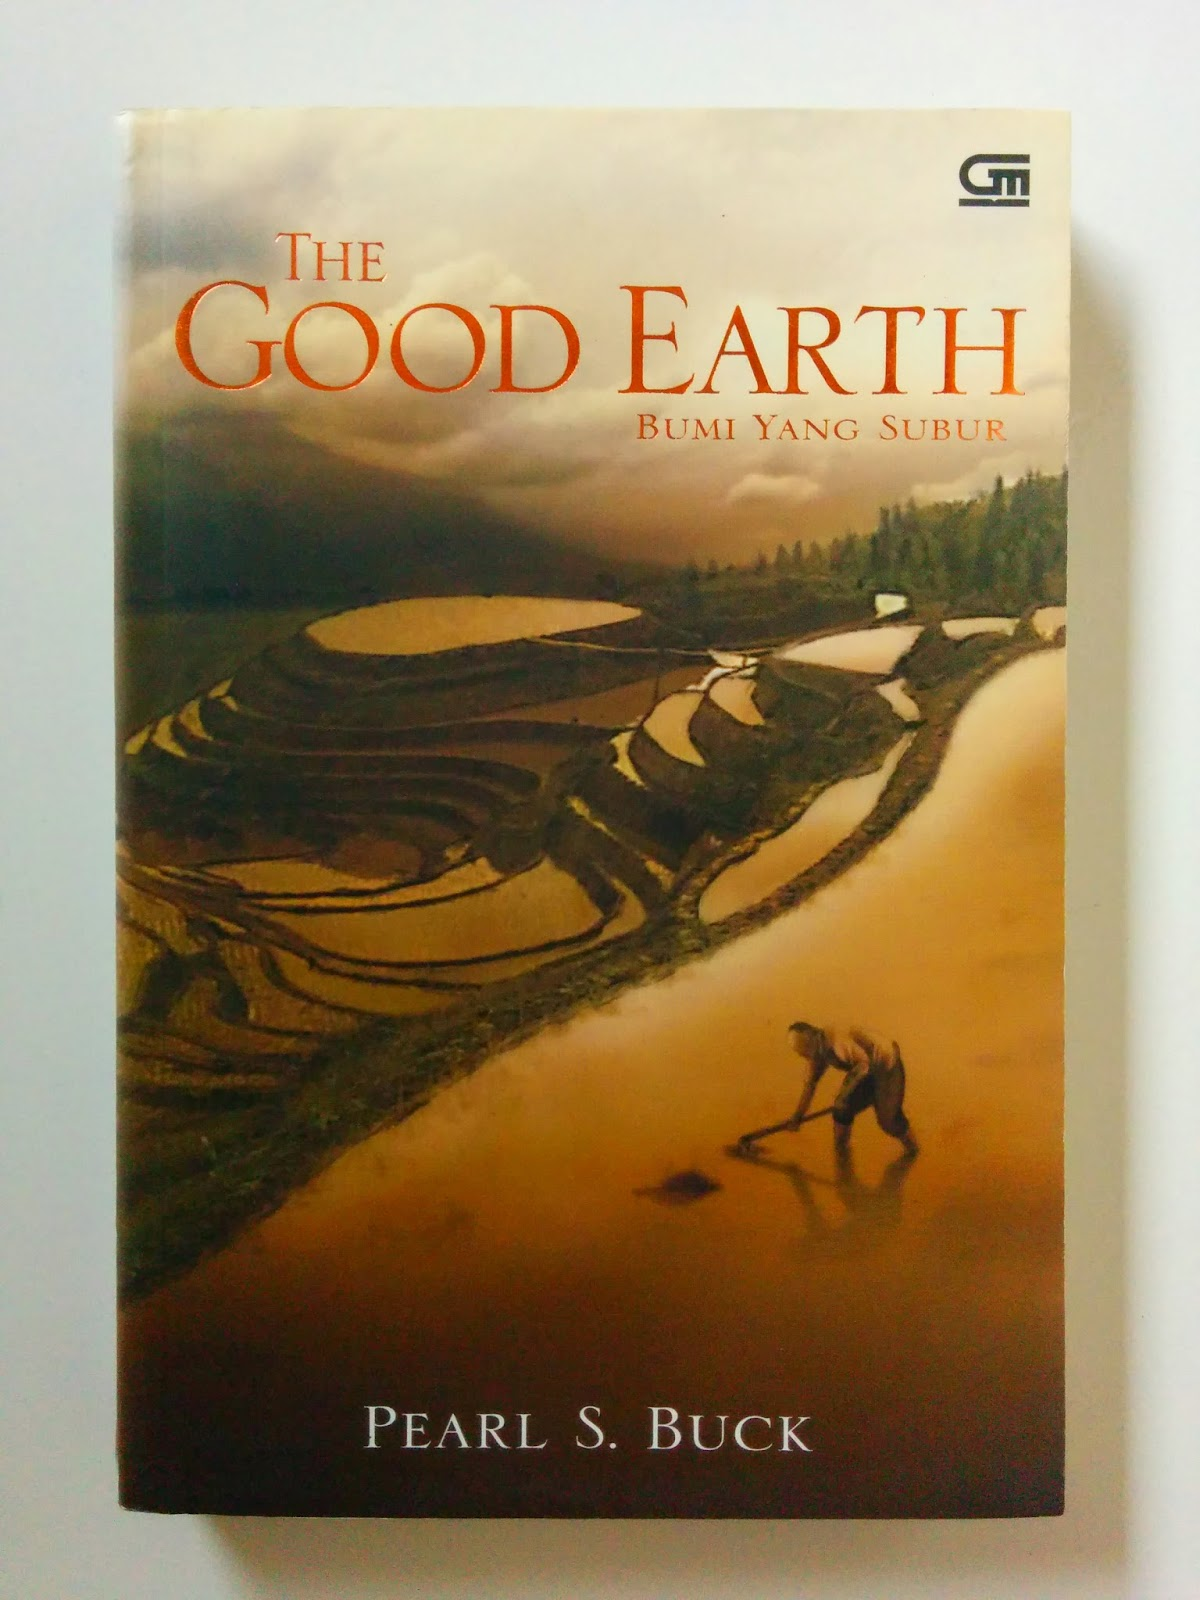 "a review on the good earth by pearl s buck 7 thoughts on "" the good earth by pearl s buck "" tahlia post author september 9, 2014 at 2:55 pm review by white lion reading group: different to what we would normally read, but interesting and enjoyable."